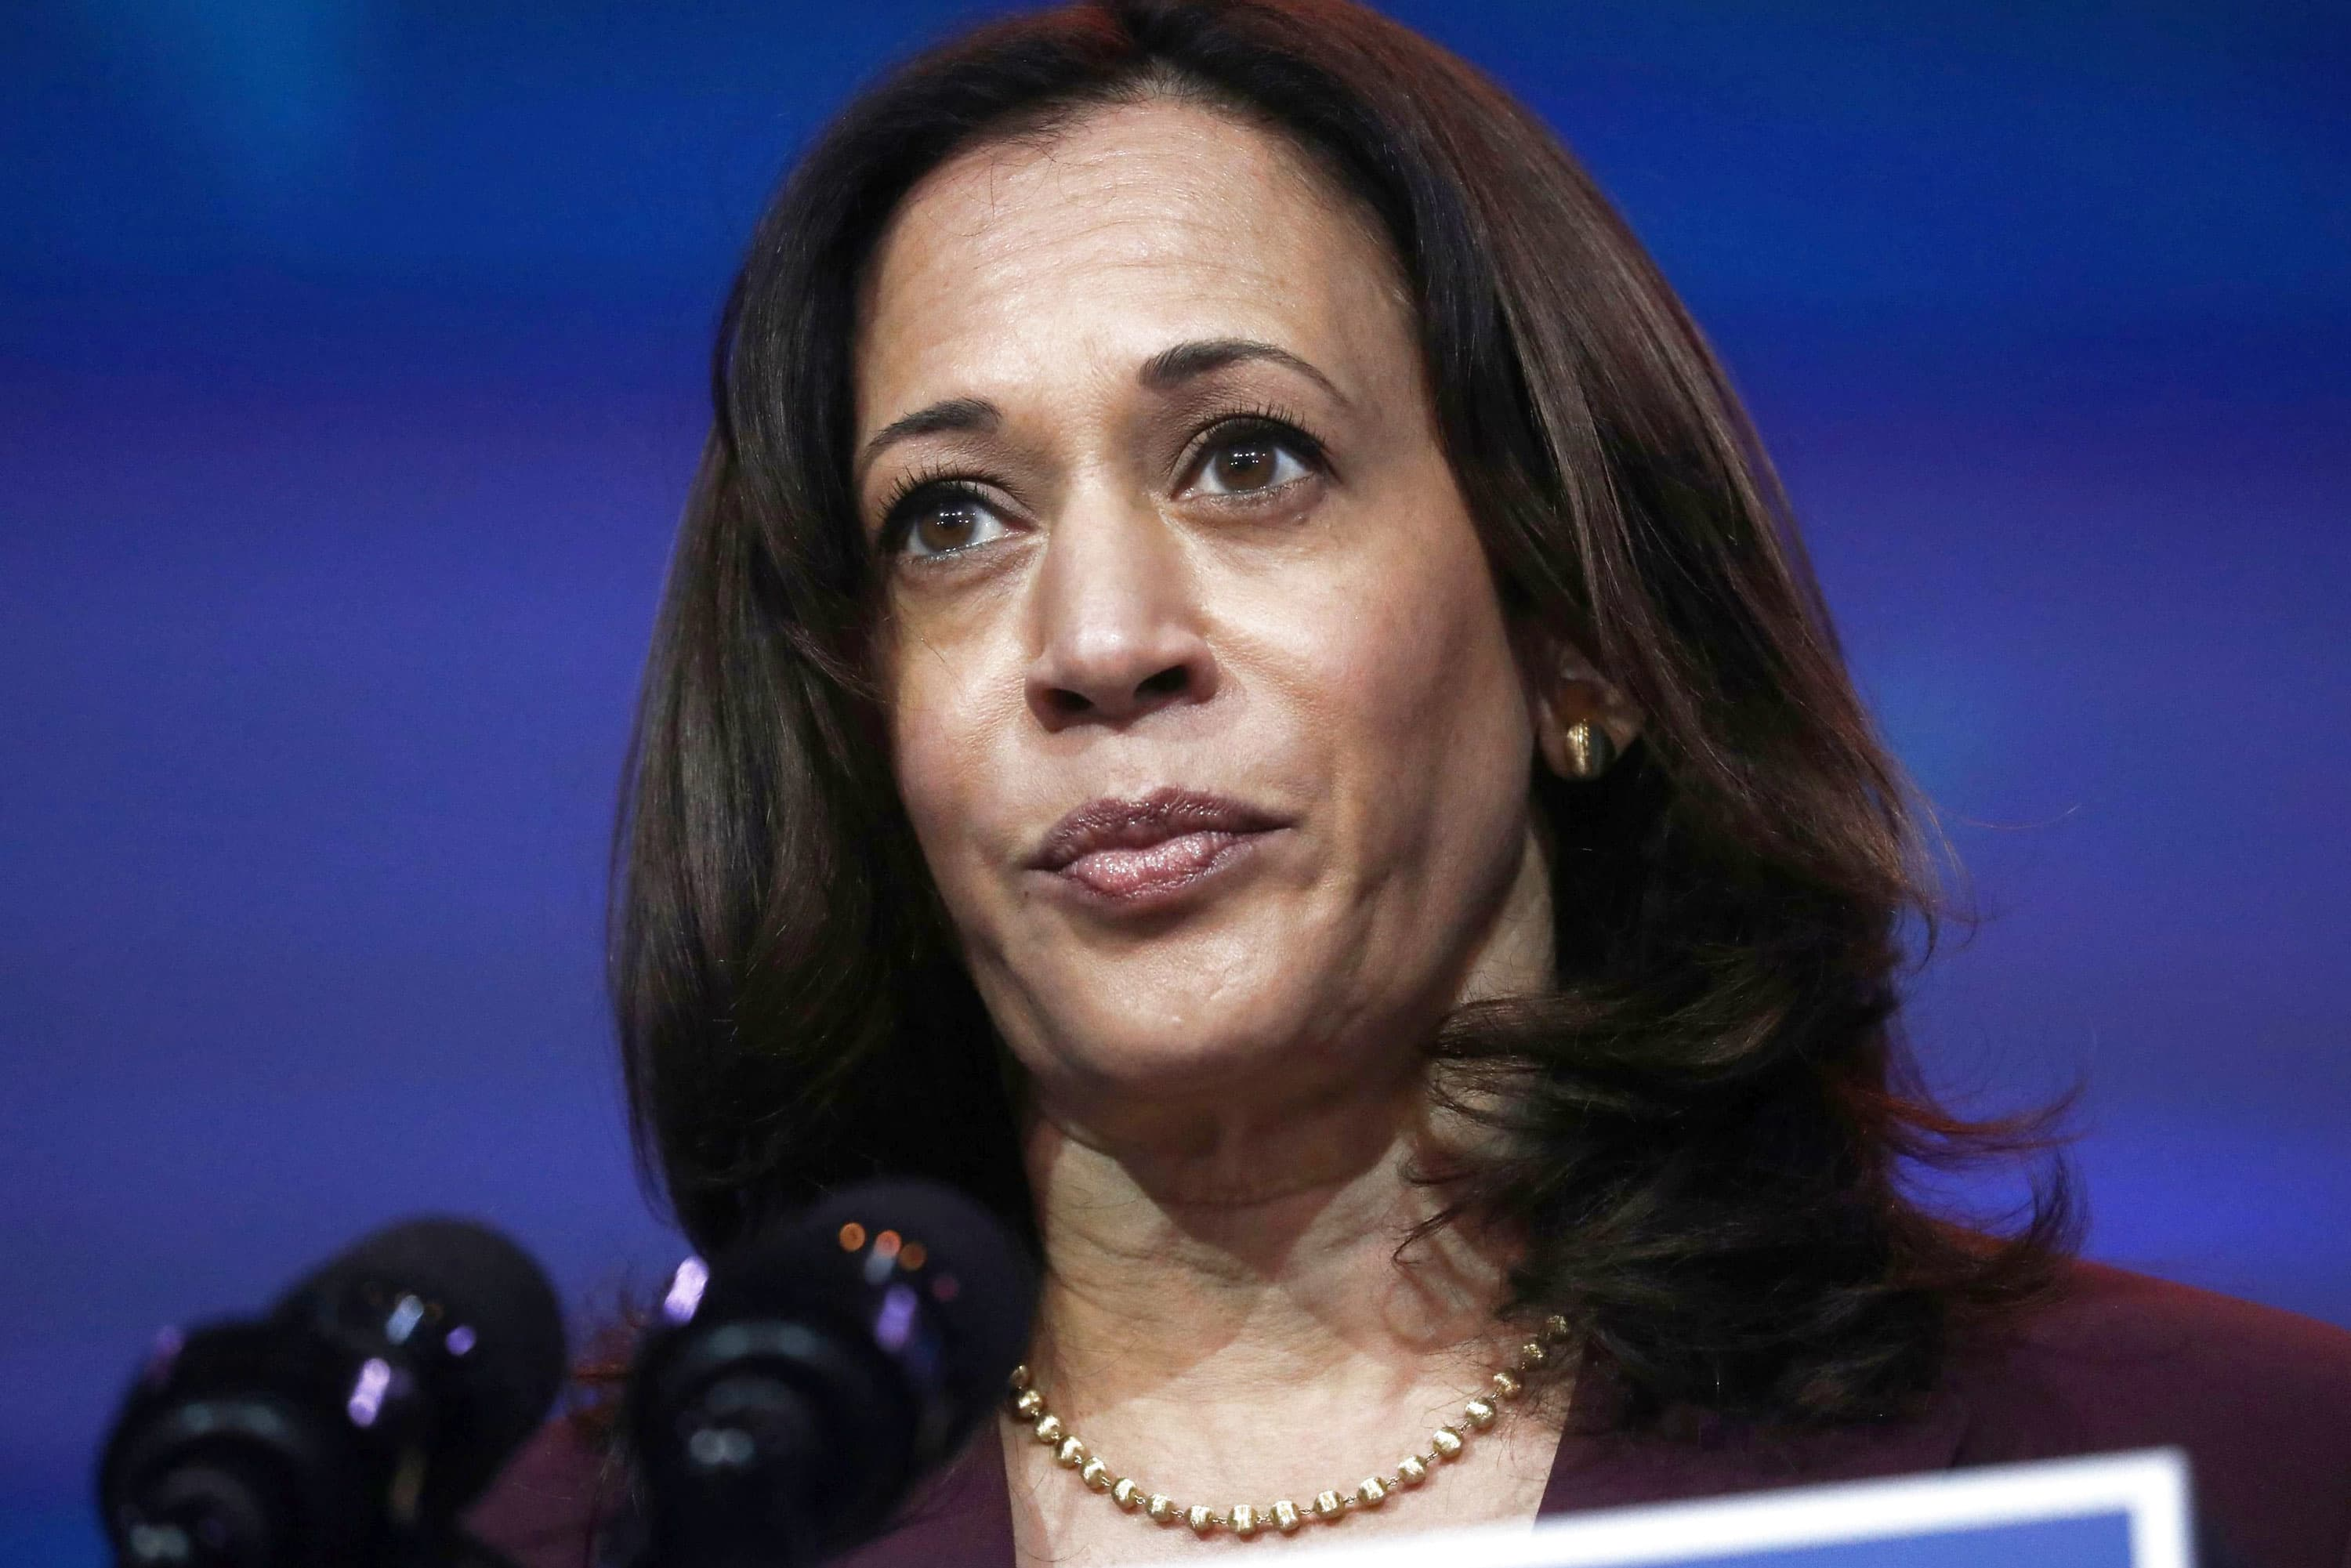 www.cnbc.com: VP Harris responds to surge in violent attacks against Asian Americans